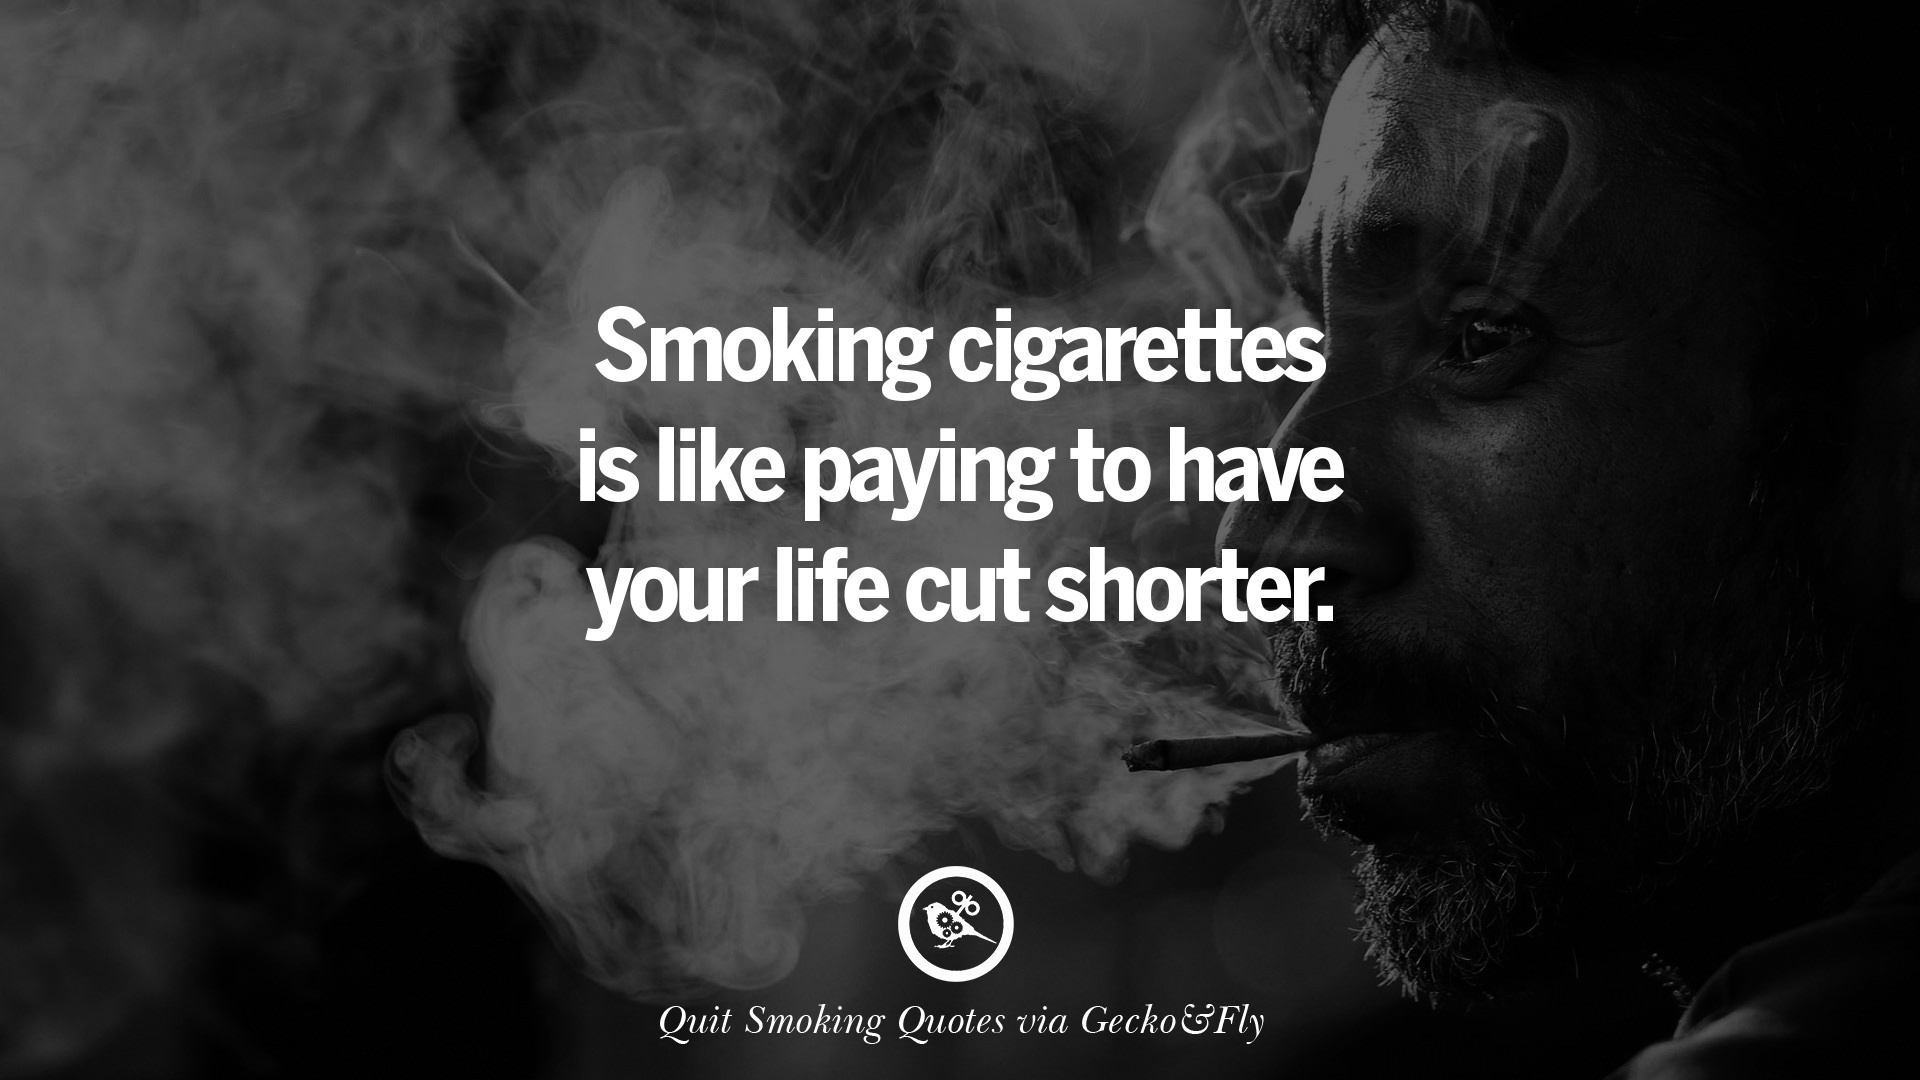 Smoking Quotes 20 Motivational Slogans To Help You Quit Smoking And Stop Lungs